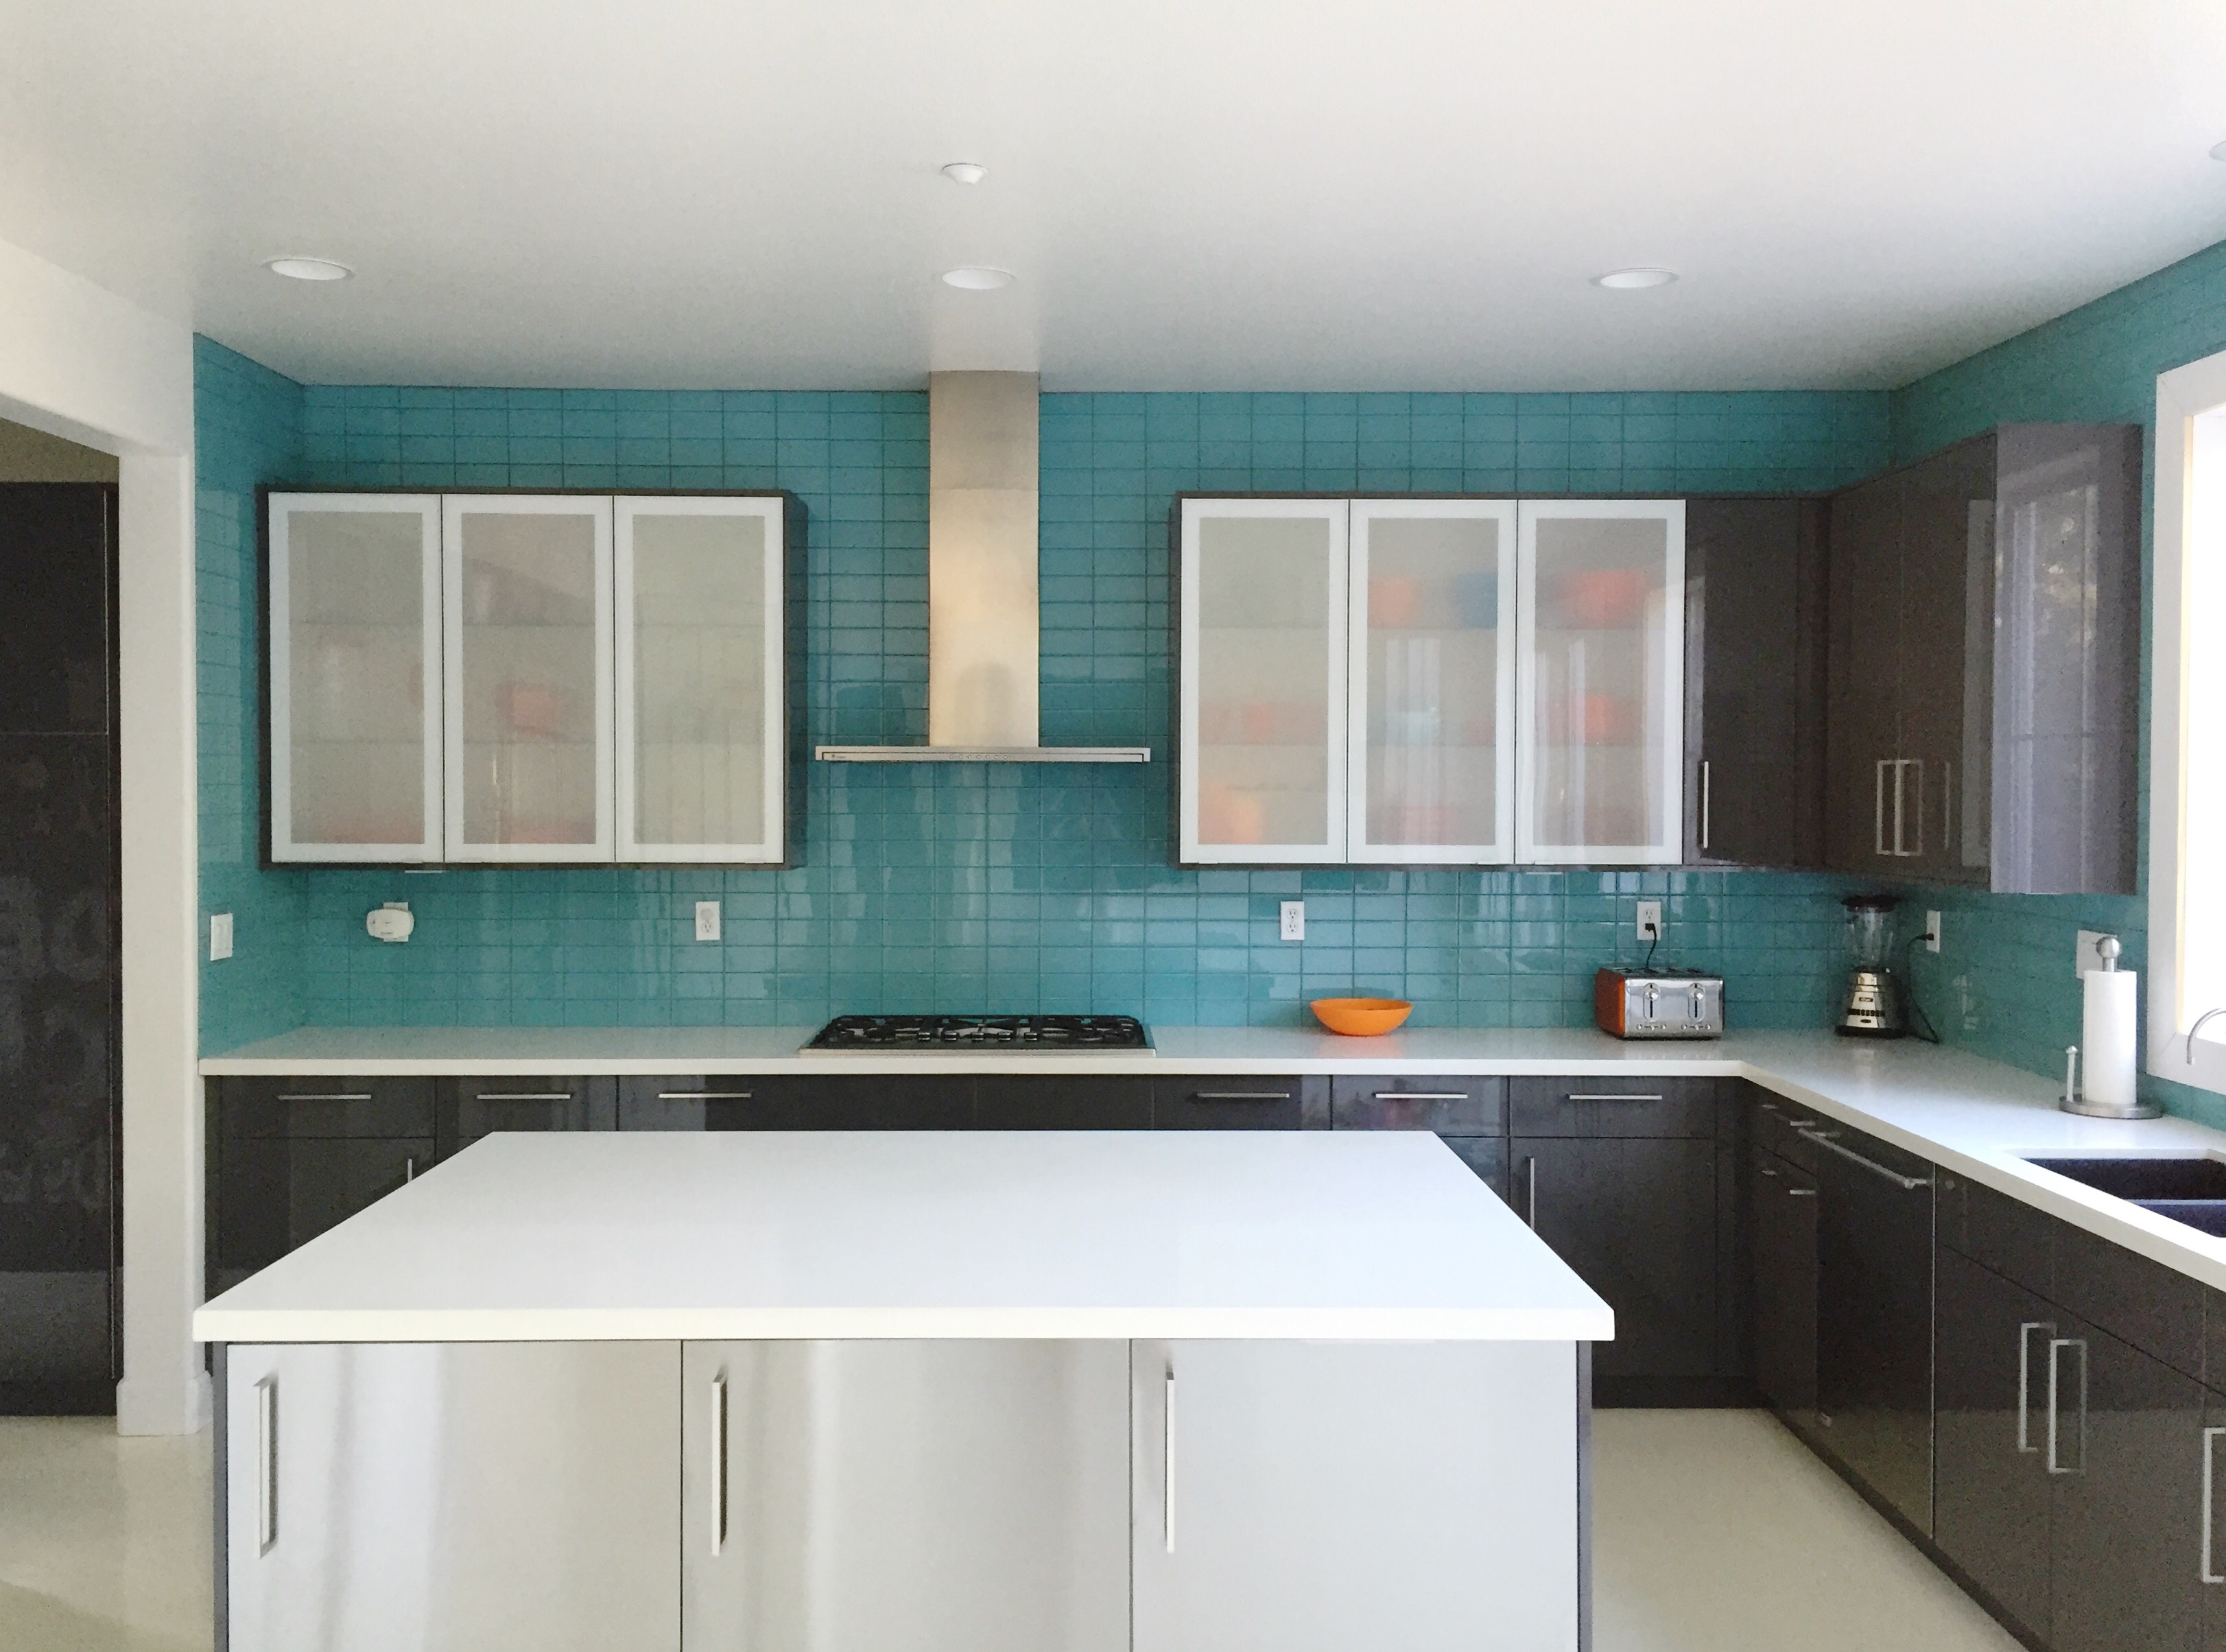 How to install glass tile backsplash easy diy for a better kitchen dailygadgetfo Choice Image